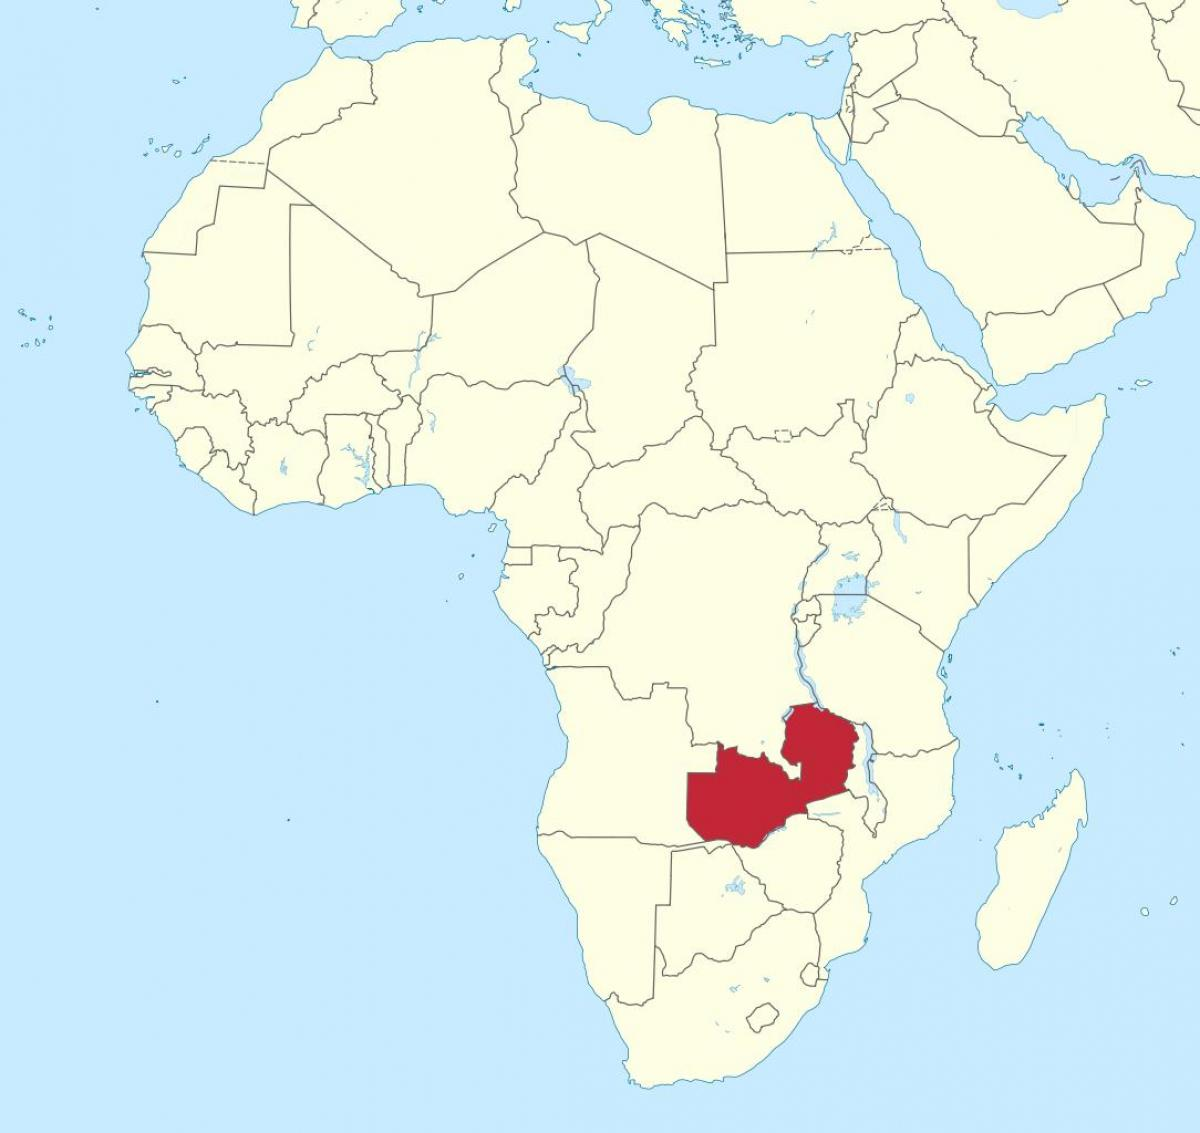 map of africa showing Zambia